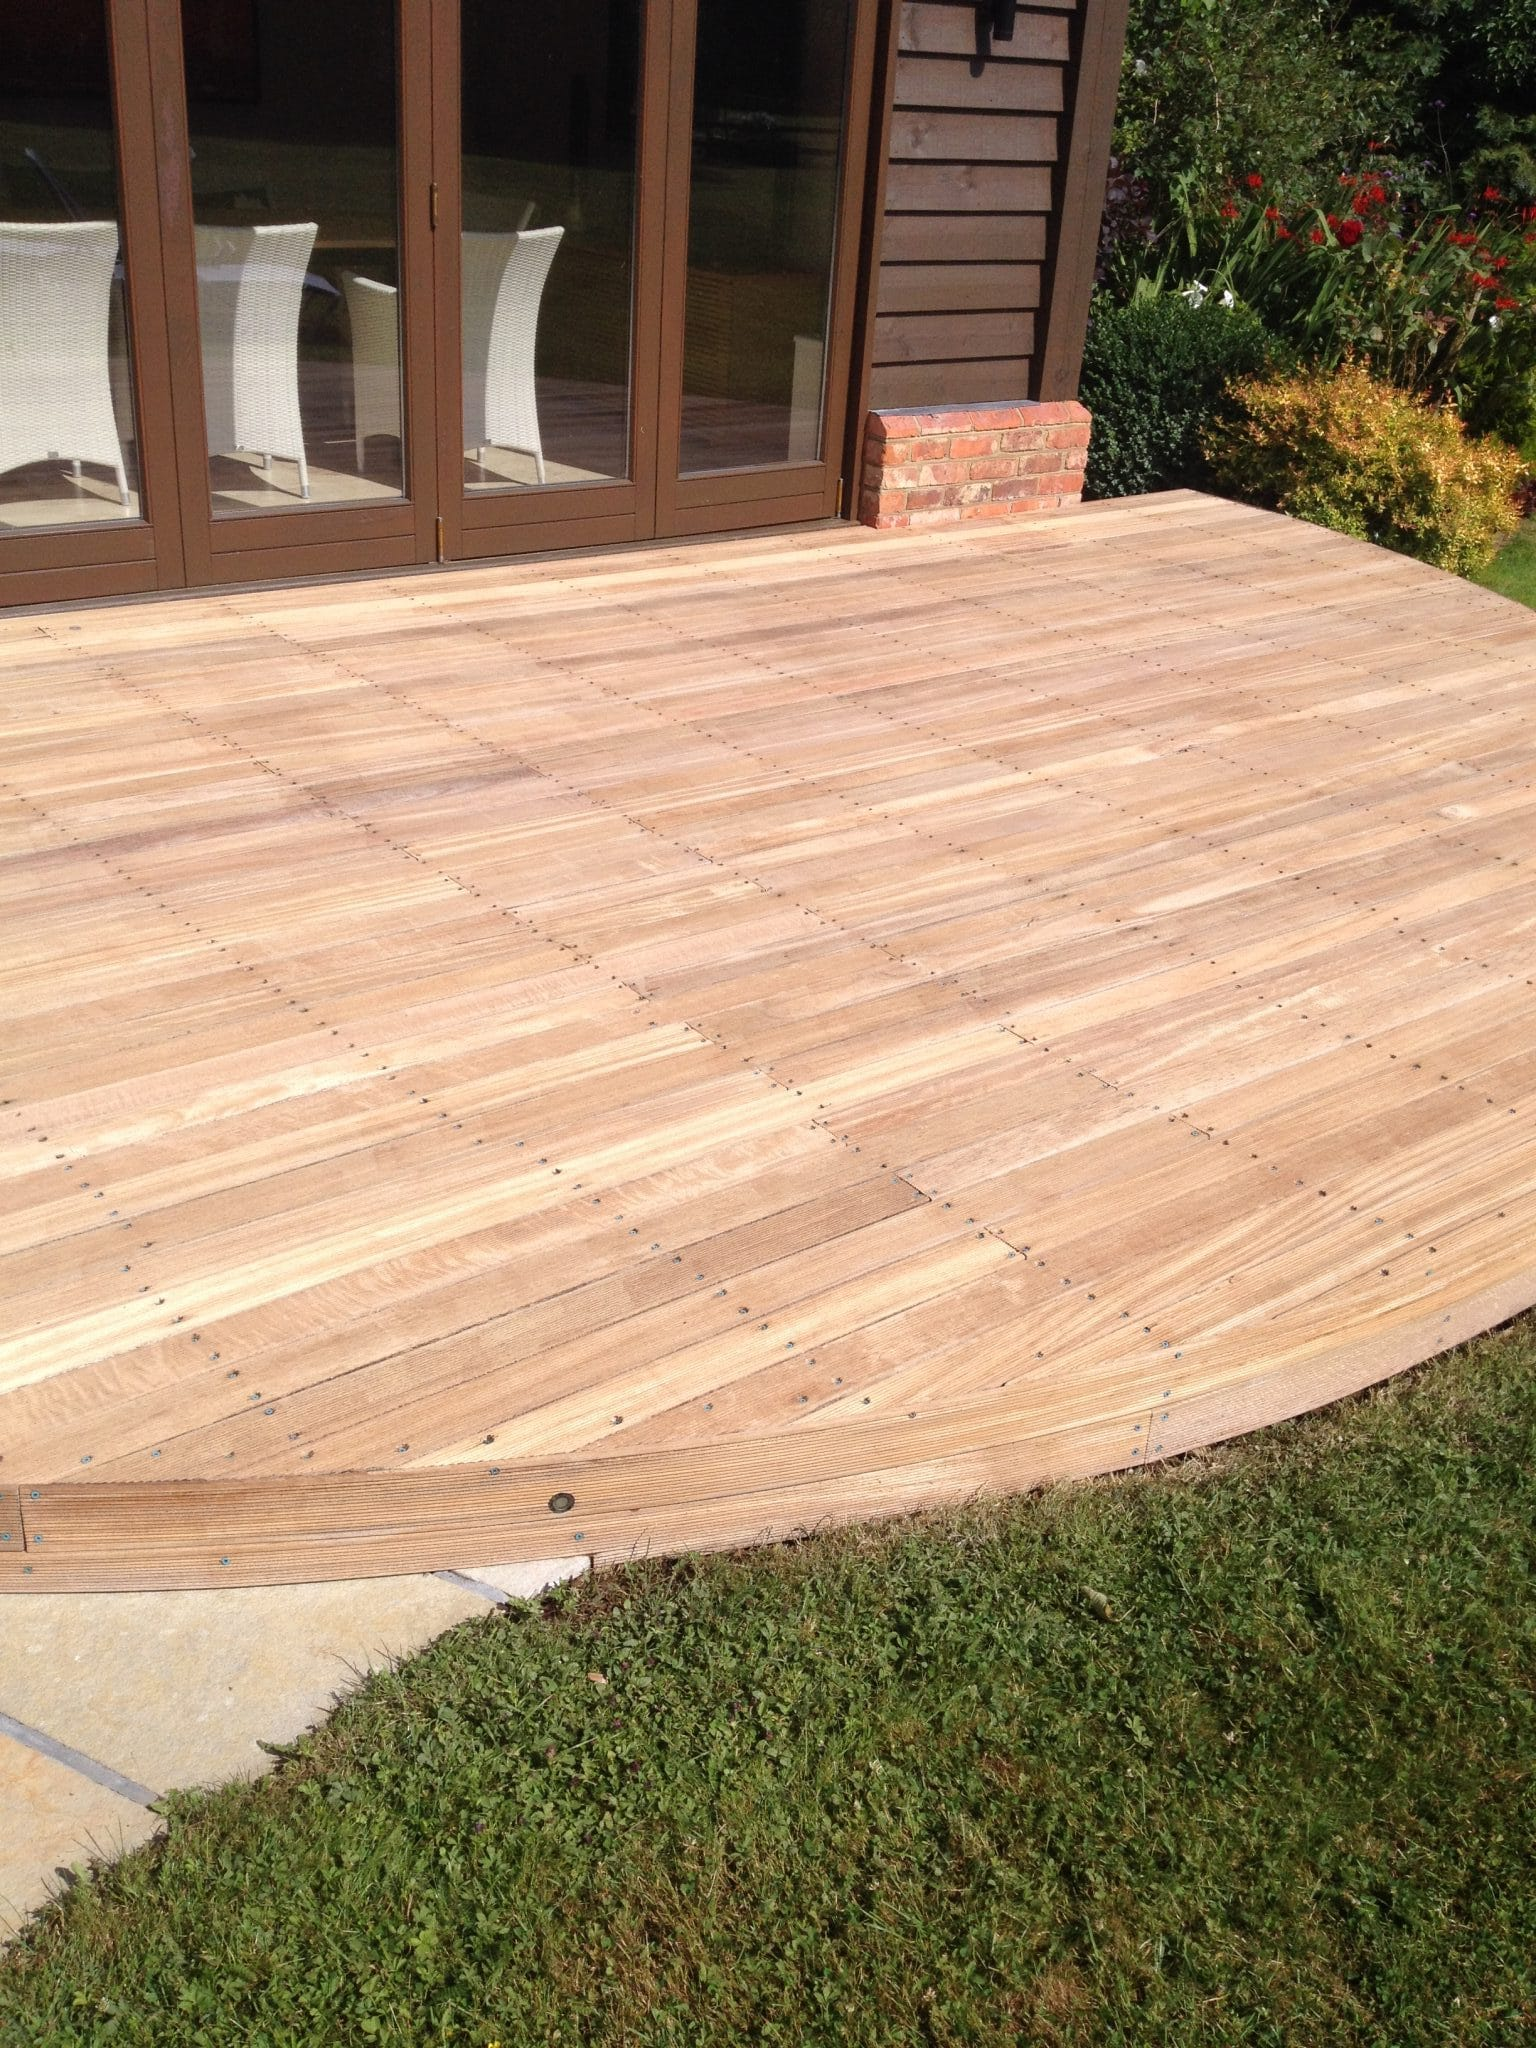 Balau decking after Net-Trol